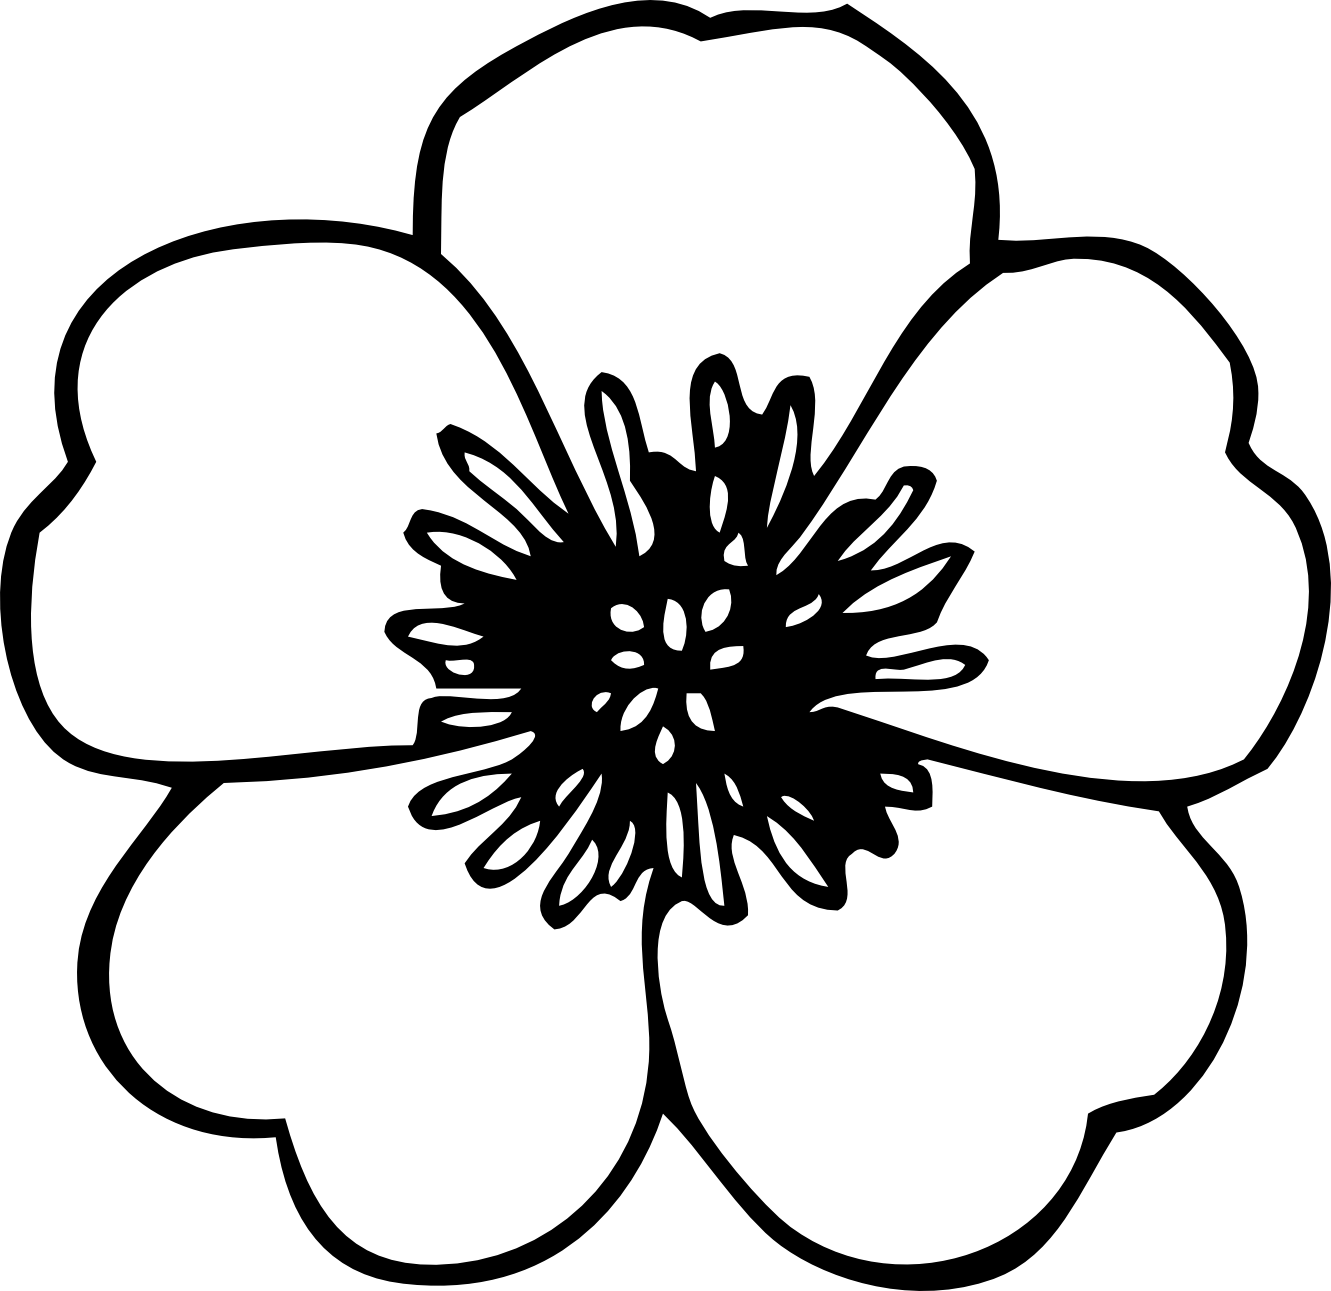 Simple black and white flower clipart svg black and white download Simple Flower Clipart Black And White svg black and white download